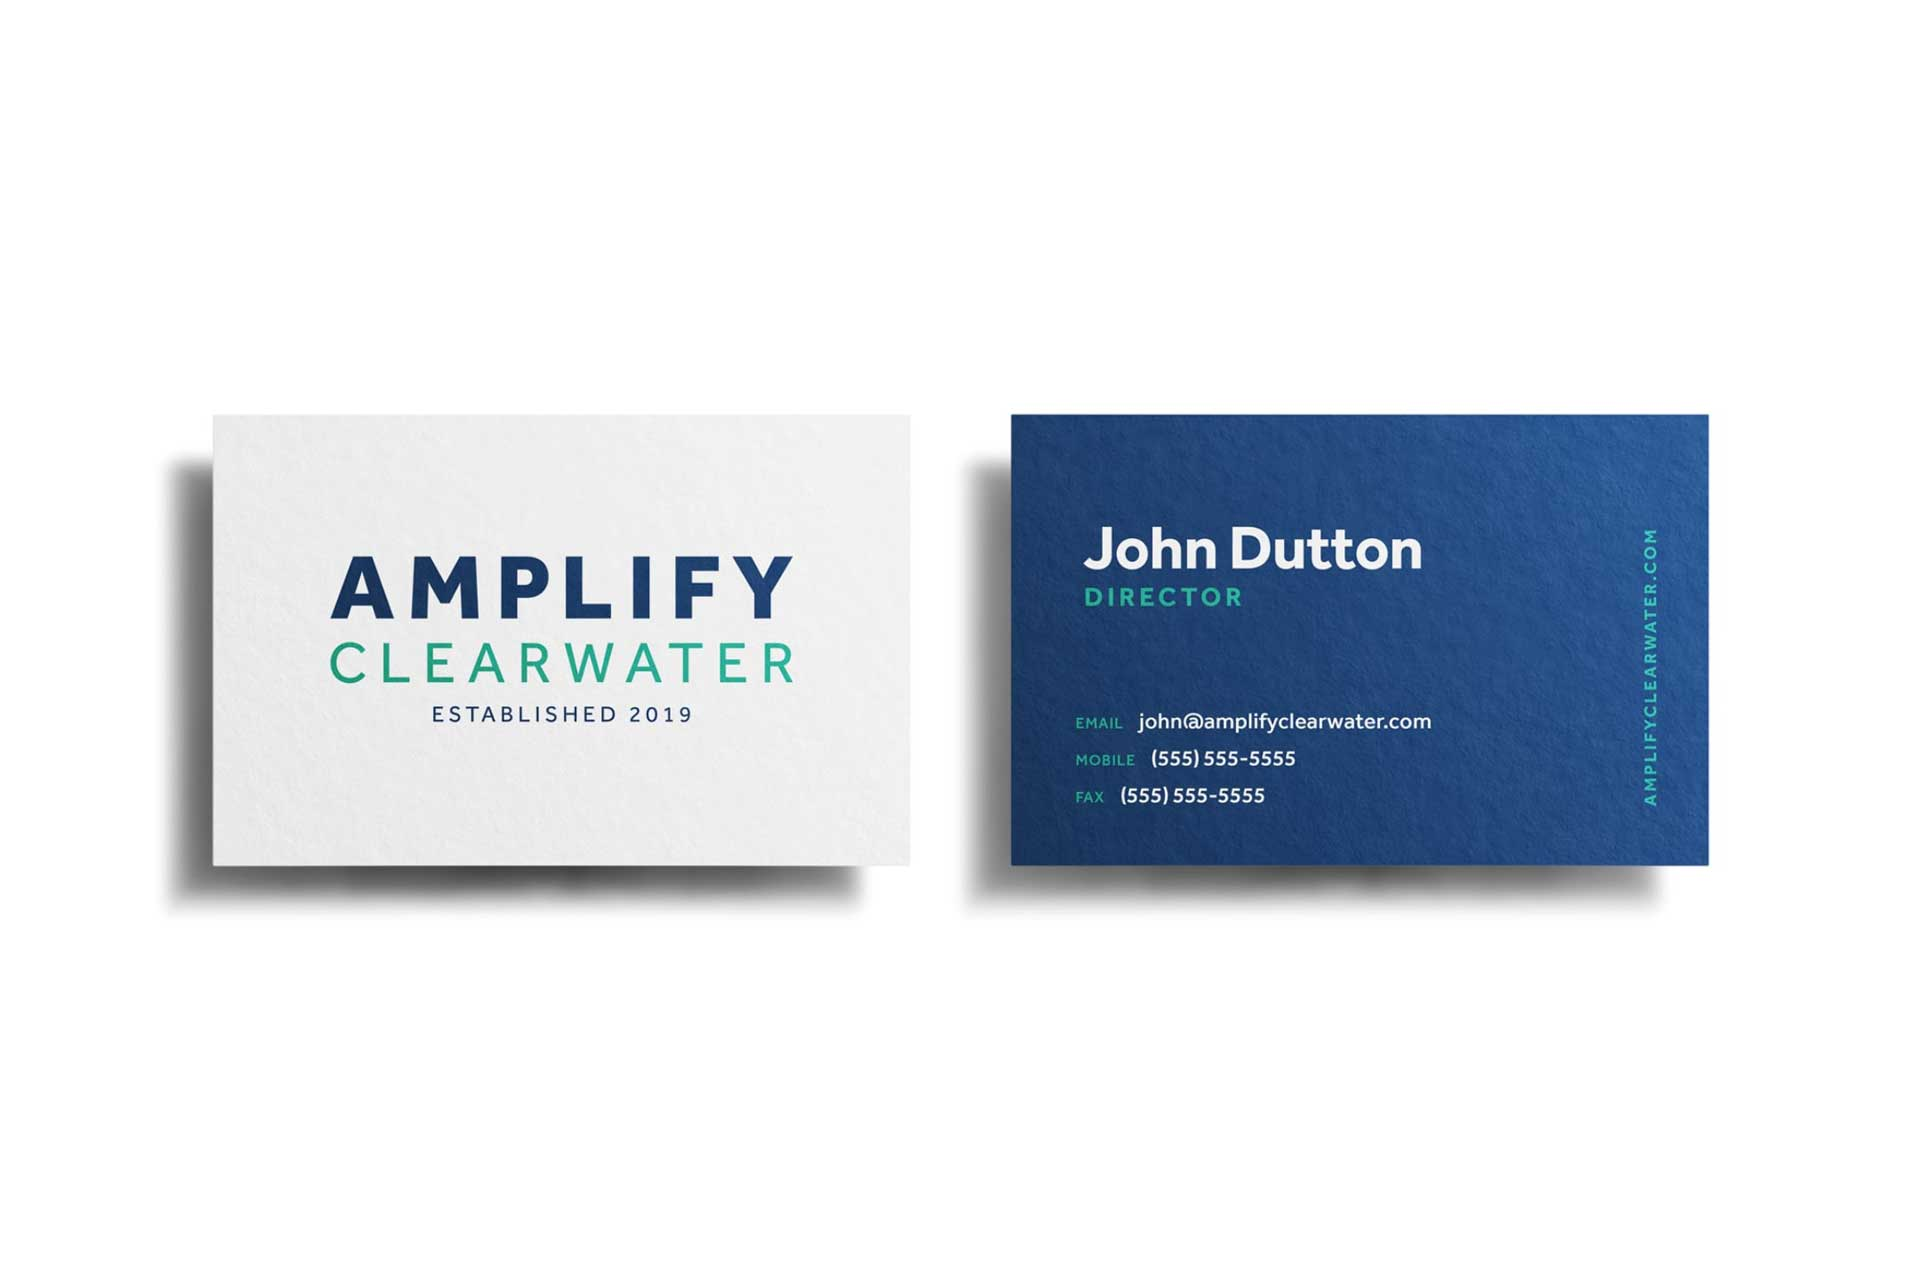 amplify-clearwater-business-cards-chamber-of-commerce-branding-Bandwagon-Branding-Marketing-min